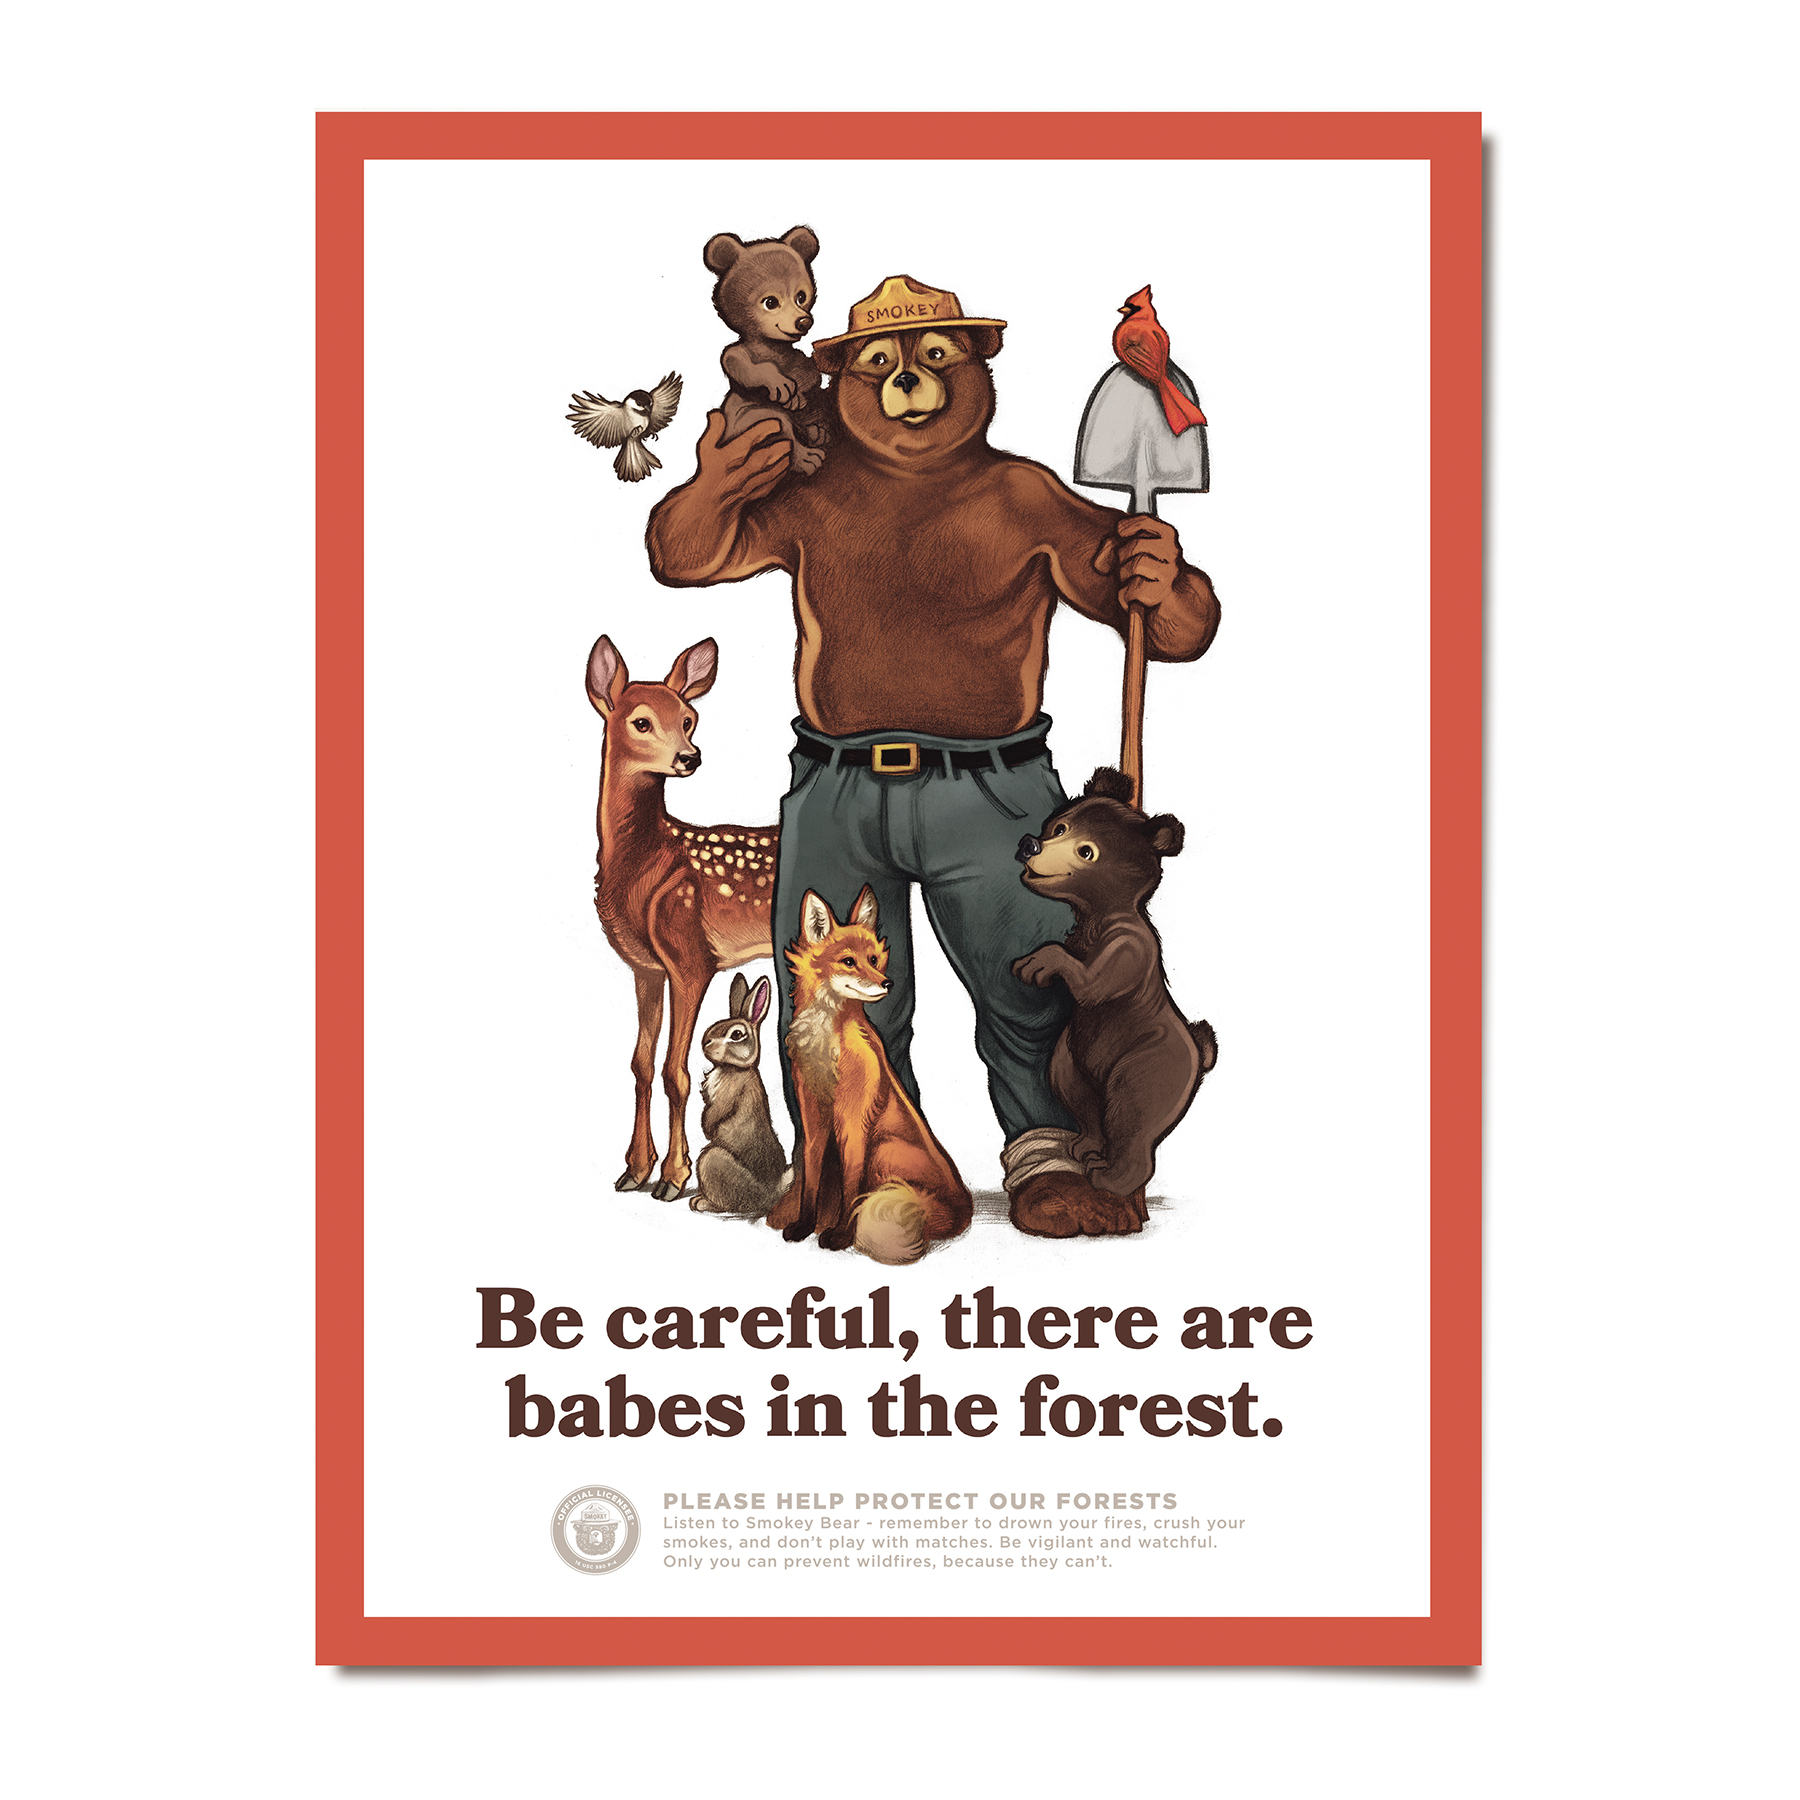 babes-forest-poster.jpg